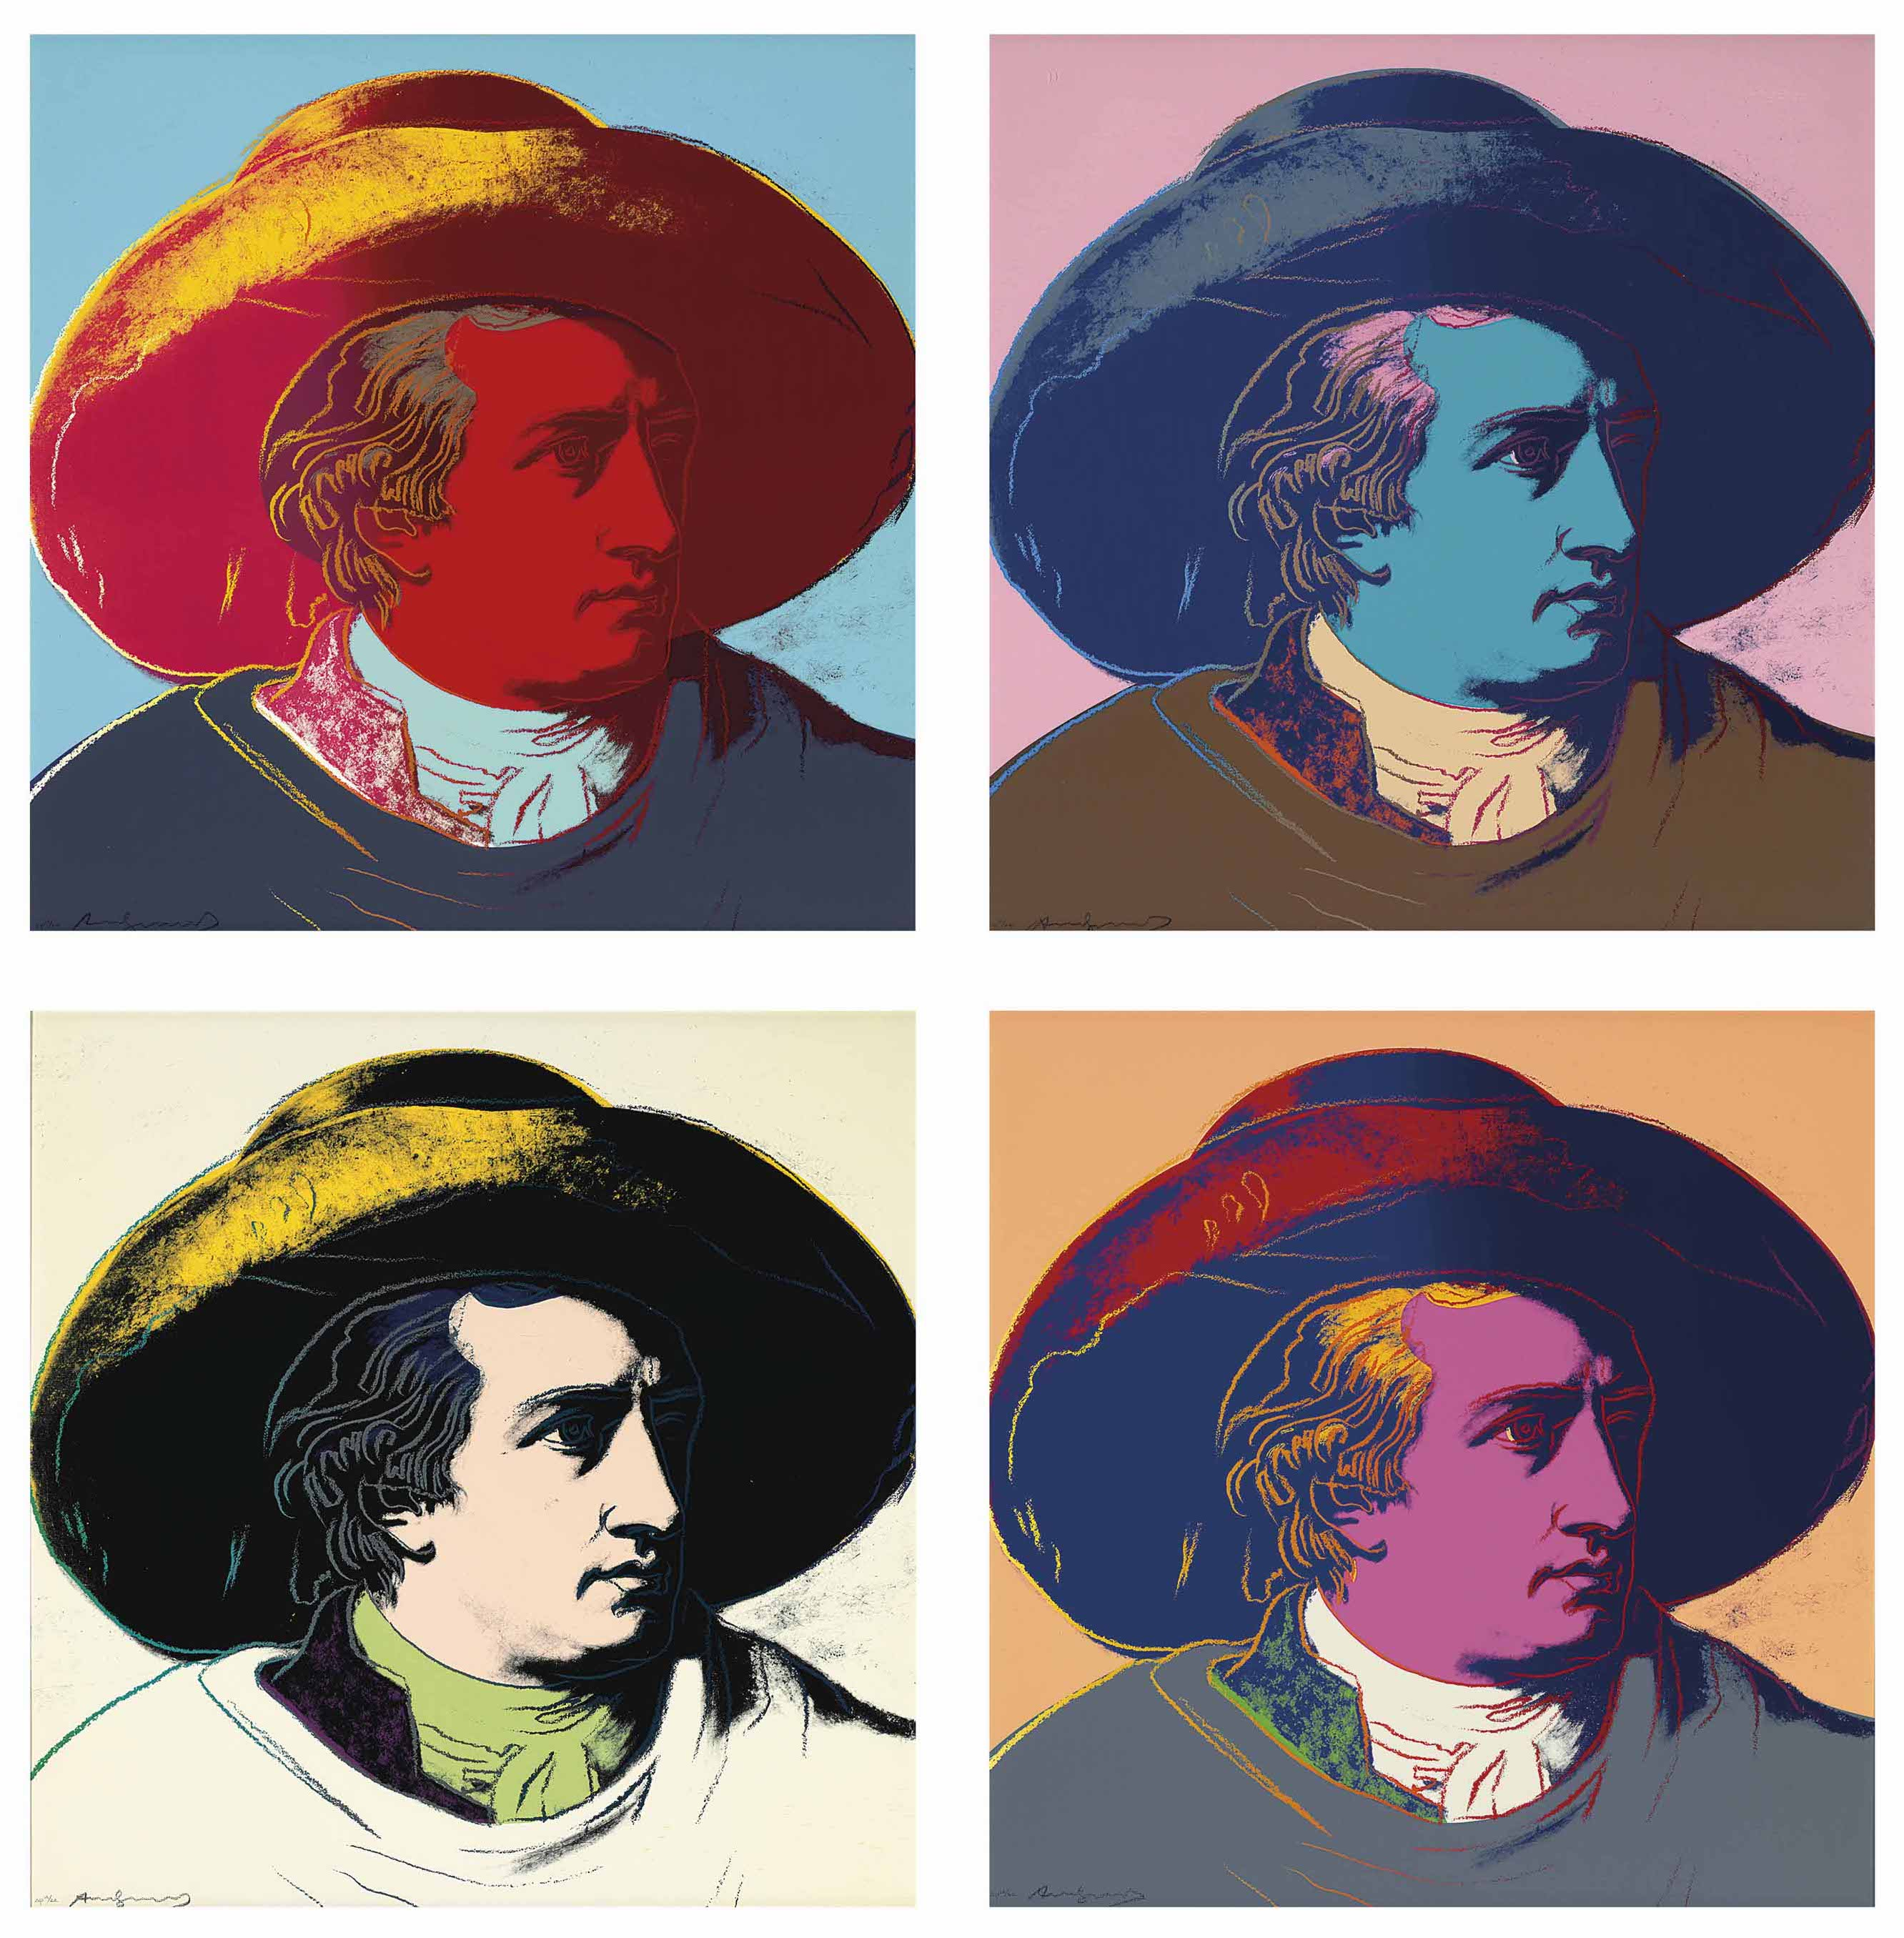 Goethe : Illustrating The Abstract Psychology of Color and